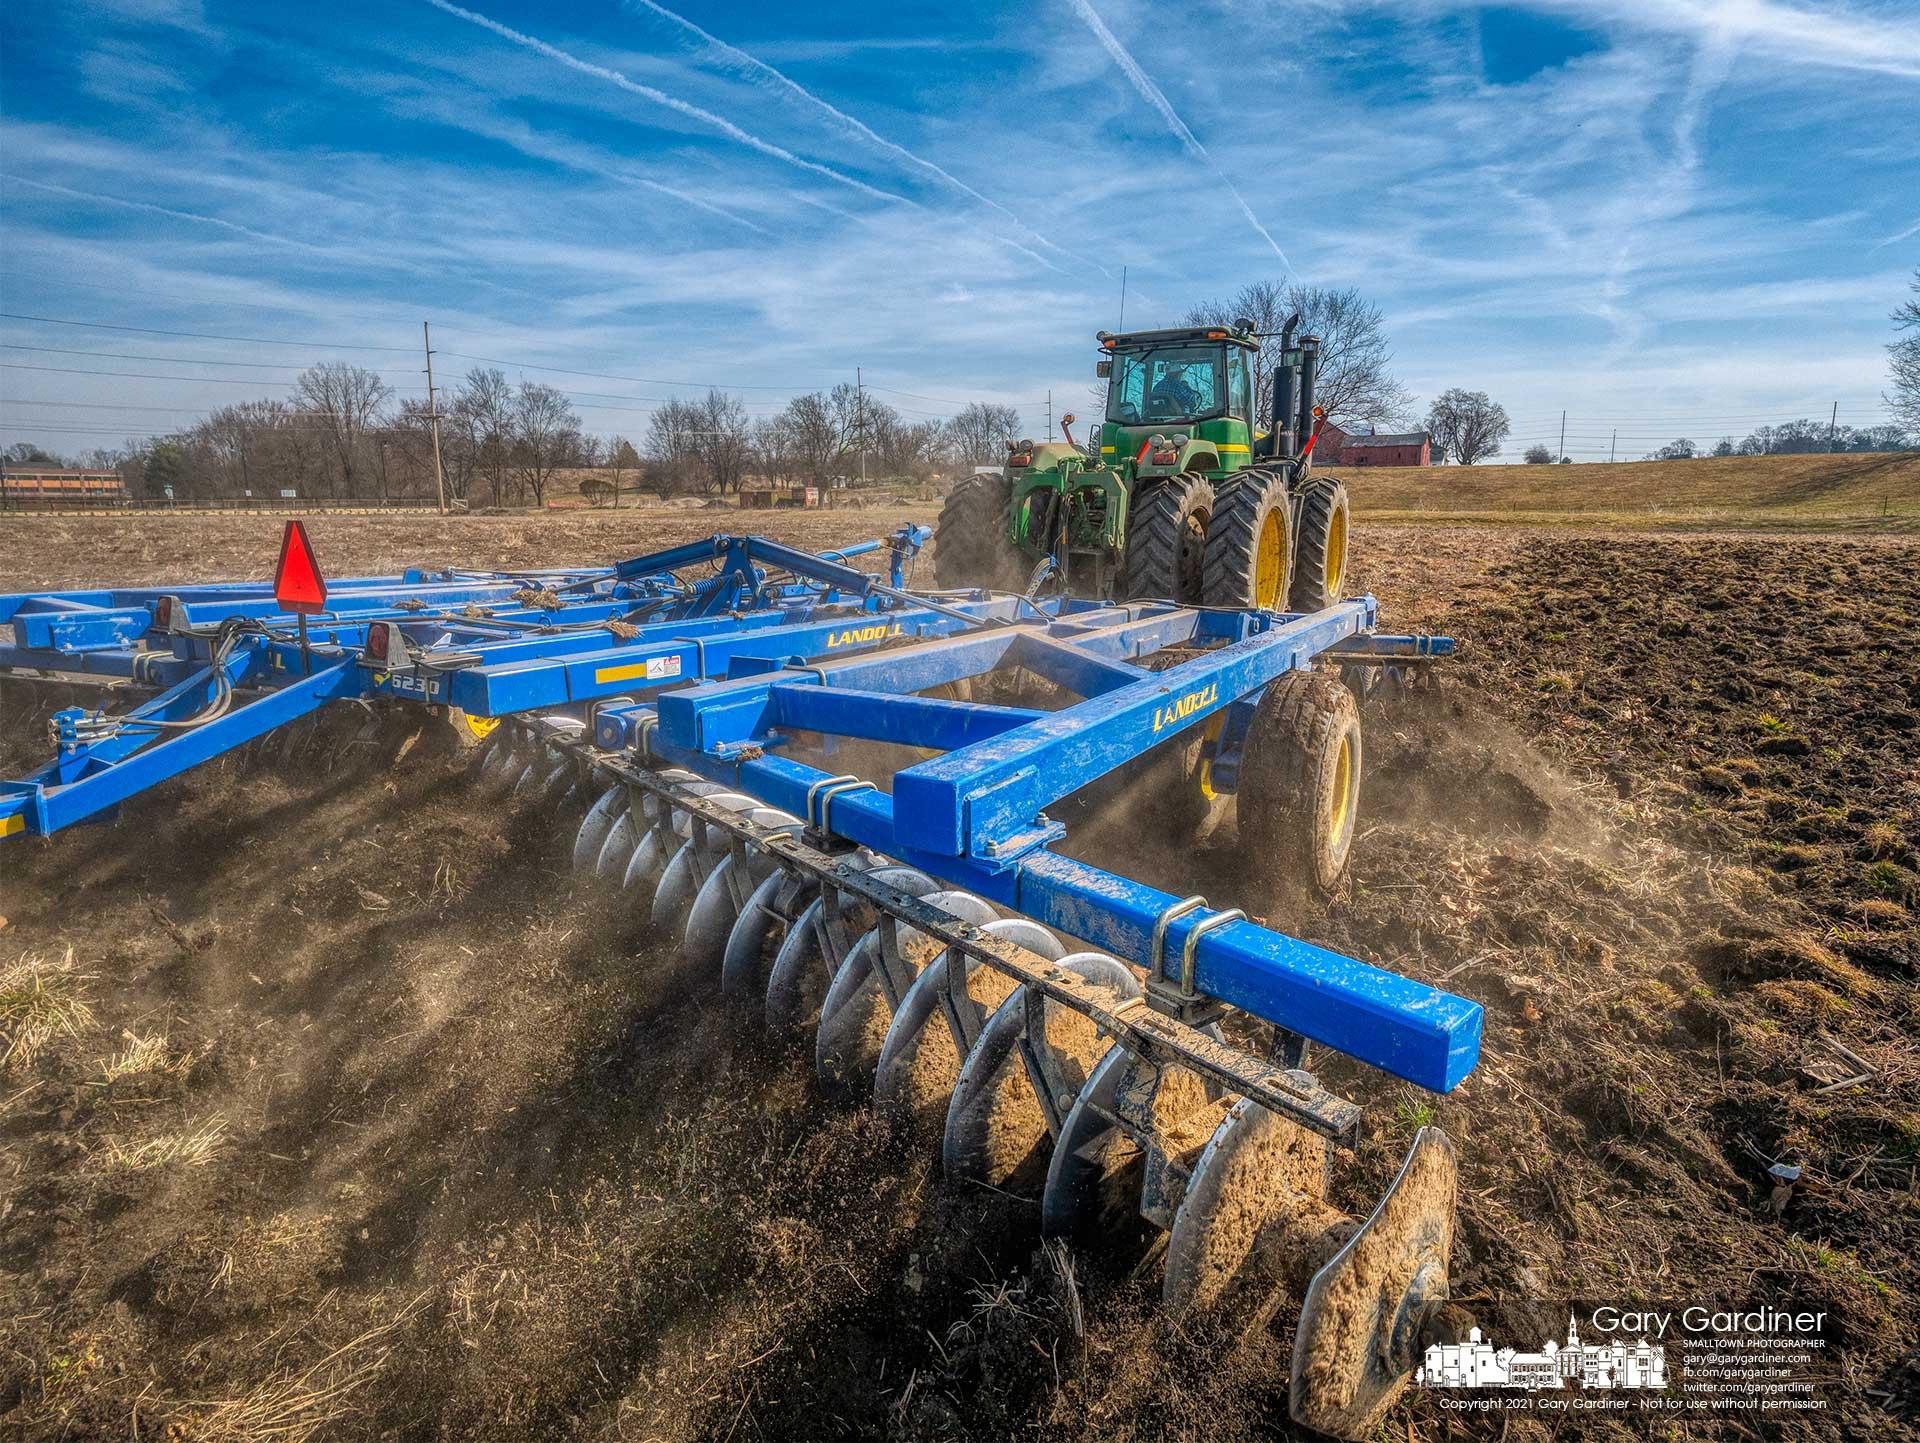 A farmer runs a disc plow over the field beneath the Yarnell Farm on Africa Road preparing for planting of corn after missing last year's planting season because of the heavy rains. My Final Photo for March 10, 2021.